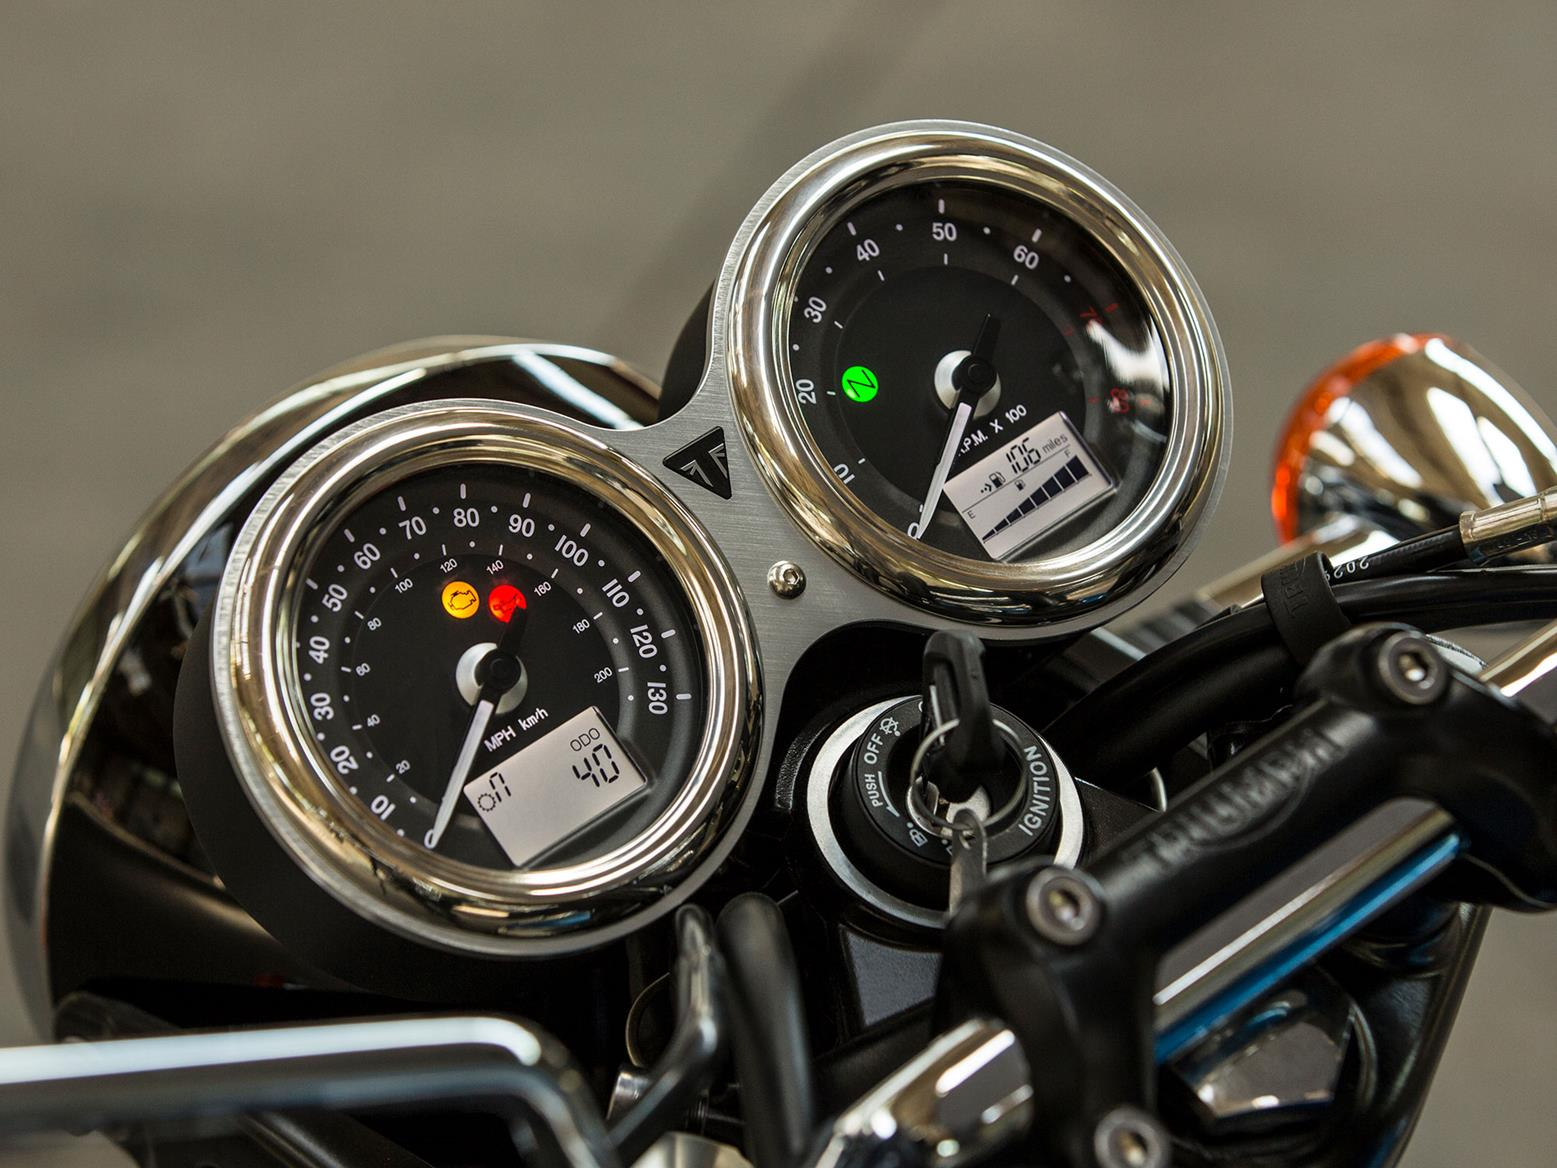 Recall issued for several Triumph models - get yours fixed soon